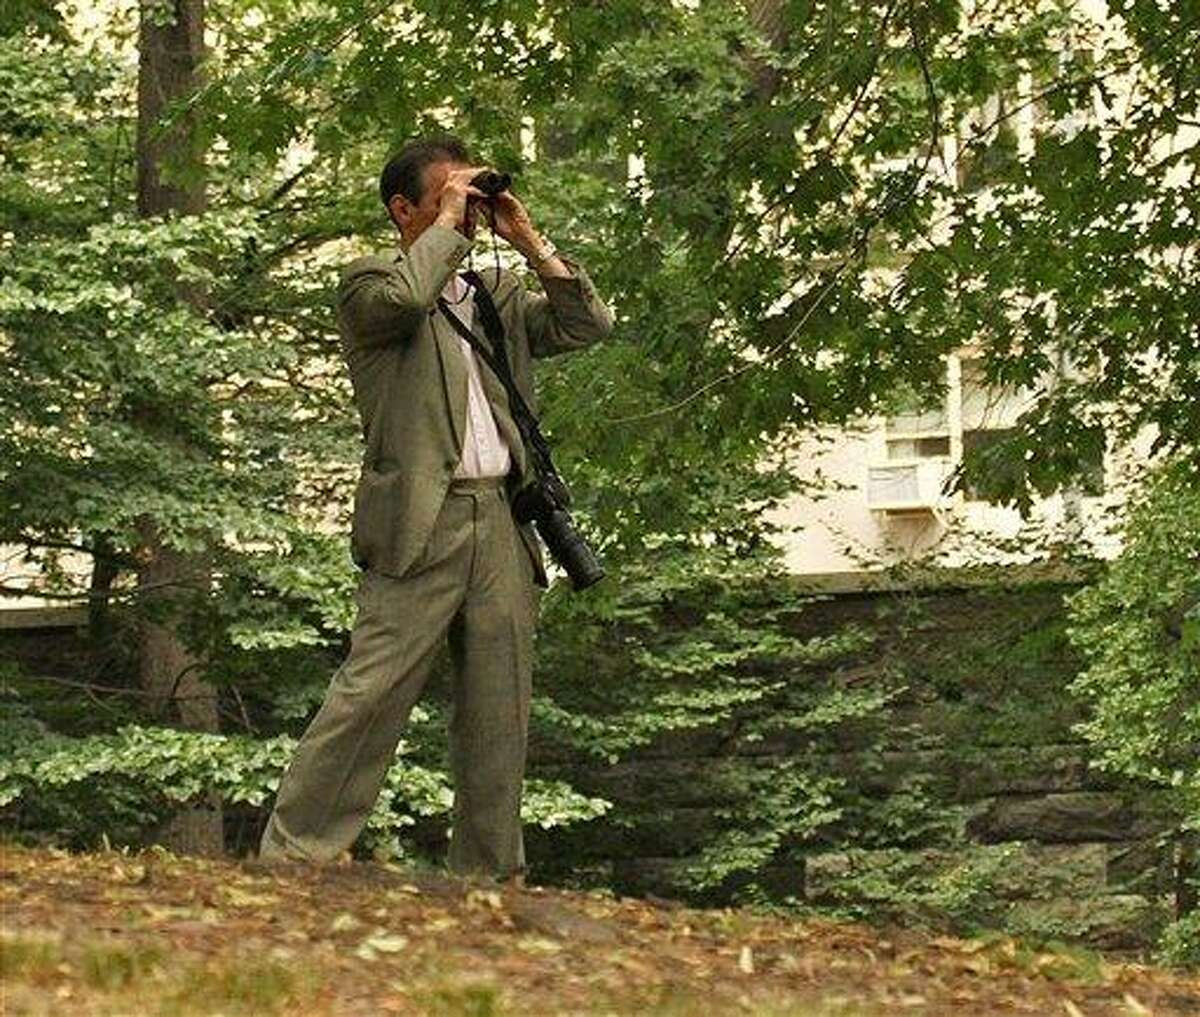 In this June 30, 2012 photo provided by Jean Shum, Jeffrey Johnson uses binoculars to search New York's Central Park for the young offspring of a popular red-tailed Hawk that local birdwatchers know as Pale Male. On Friday, Aug. 24, 2012, Johnson killed a former employer outside the Empire State Building in New York and was himself killed shortly afterwards by police. Nine bystanders were wounded in that chaotic confrontation. (AP Photo/Jean M. Shum) MANDATORY CREDIT